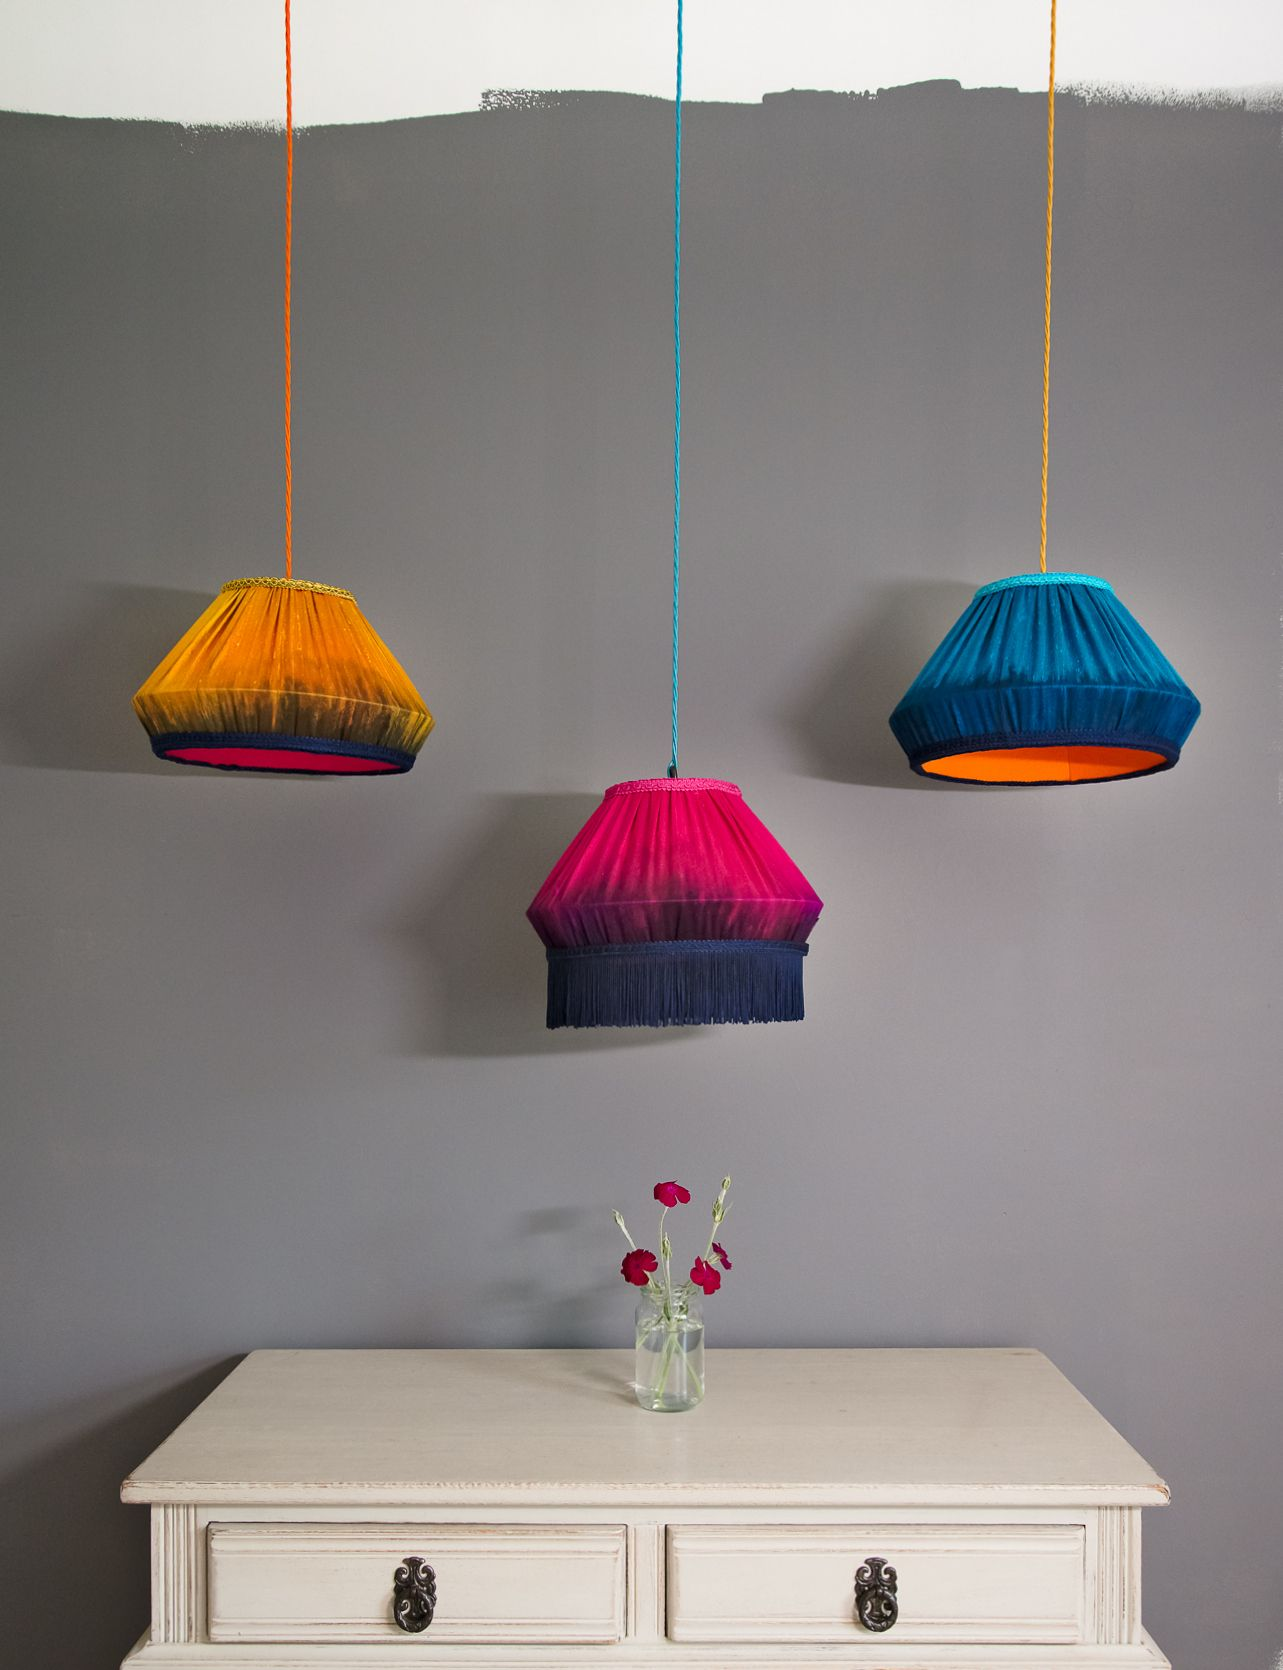 Paper Lampshades In Deep Saturated Colors Of Raspberry Aqua And Yellow Cute Home Decor Decor Paper Lampshade